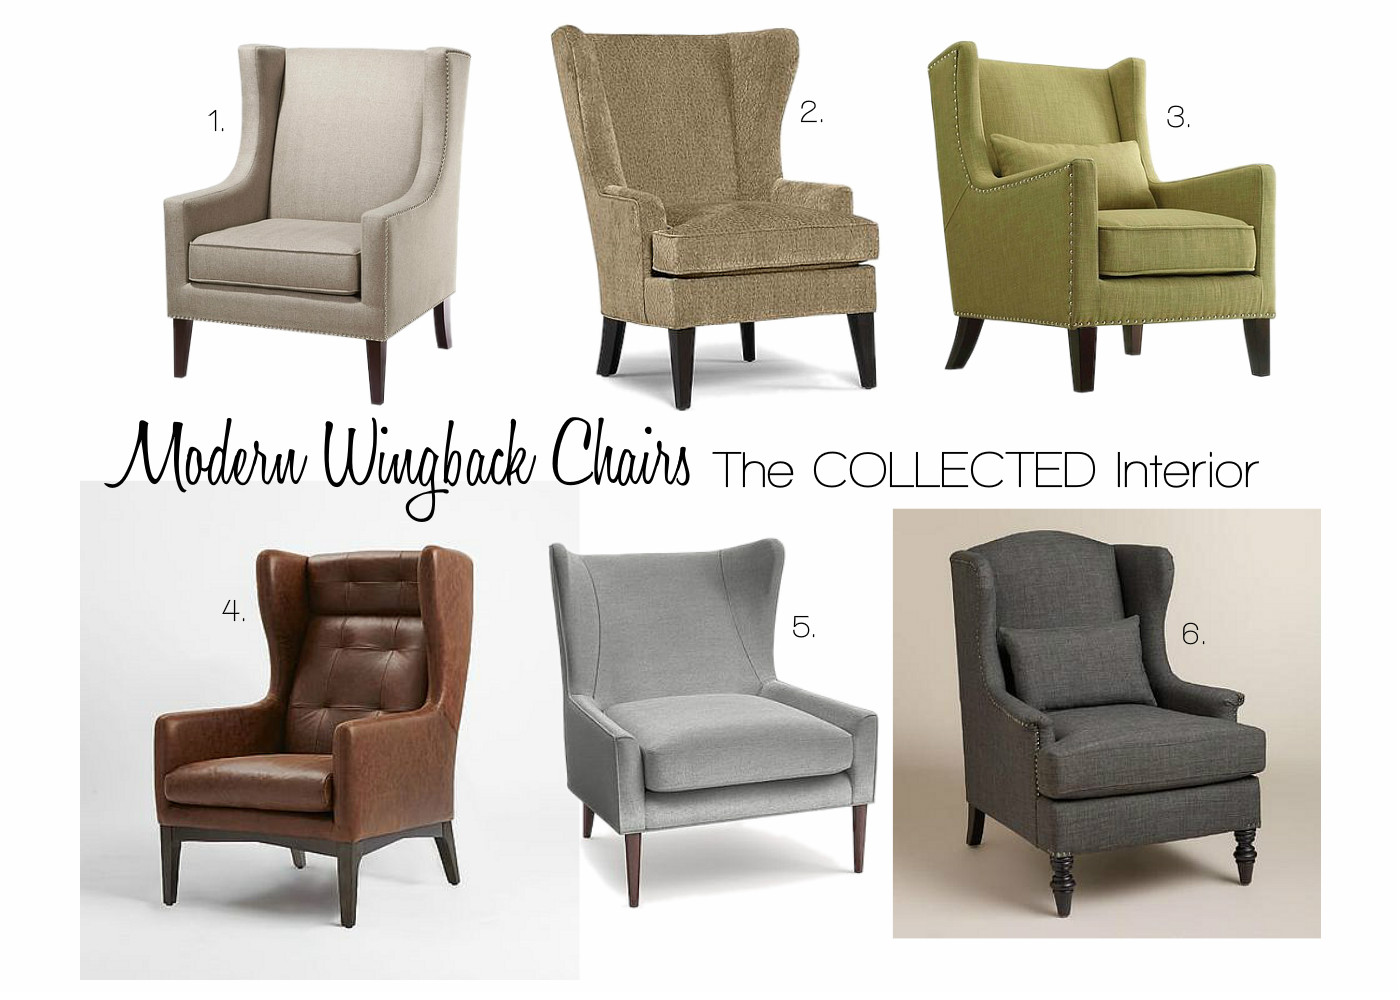 The Collected Interior Design Crush Modern Wingback Chairs